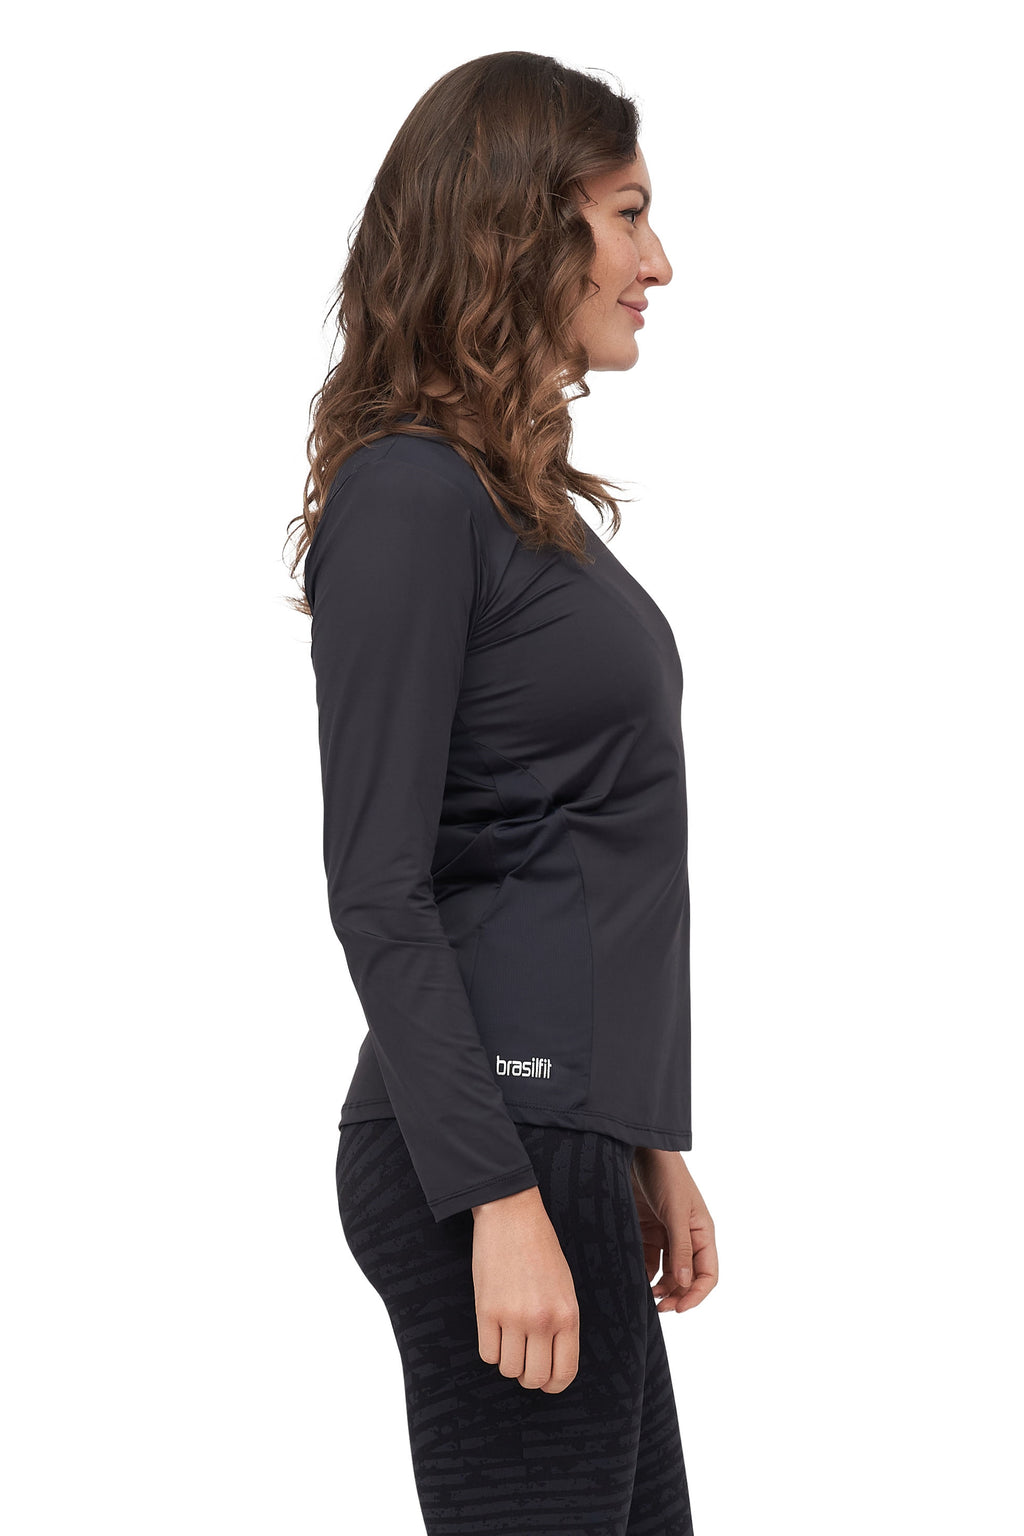 Lorca Long Sleeve Top